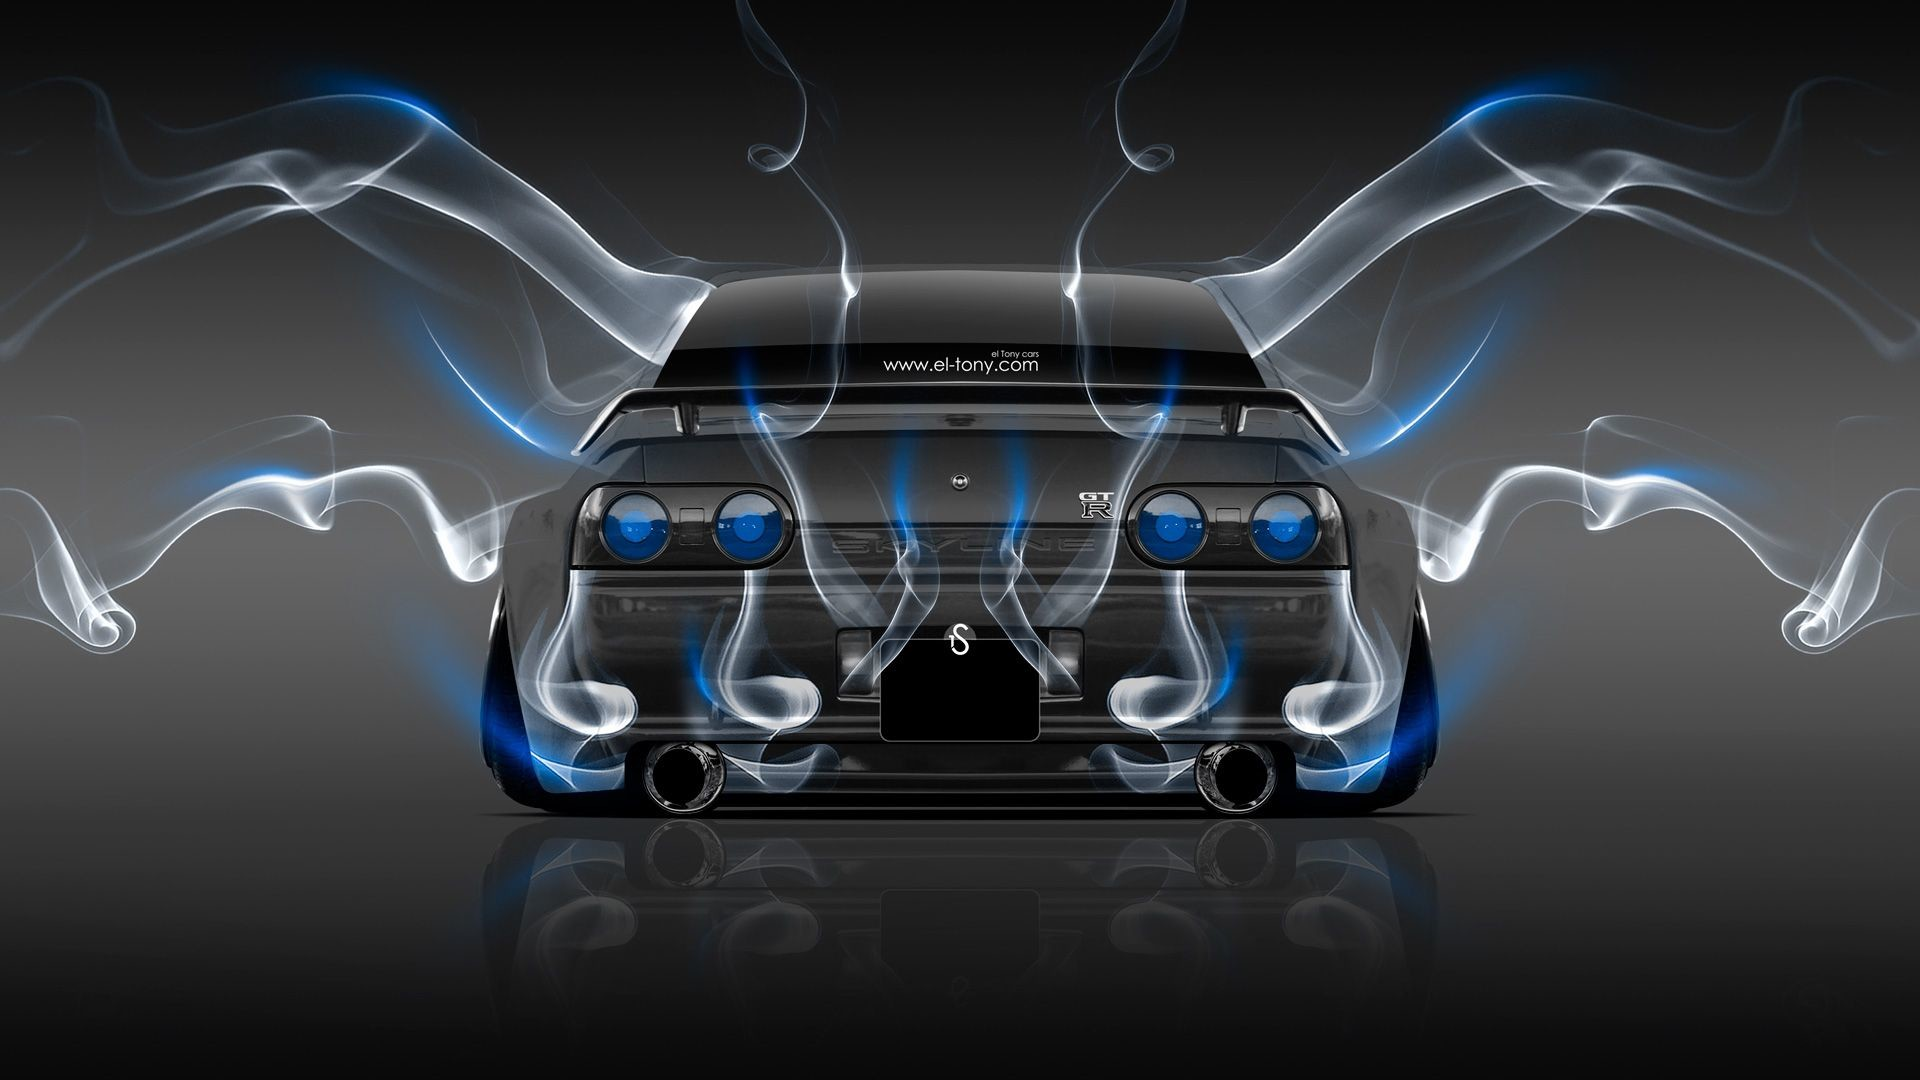 Cool Cars Drifting Wallpapers Hd Nissan Skyline R32 Wallpaper 73 Images